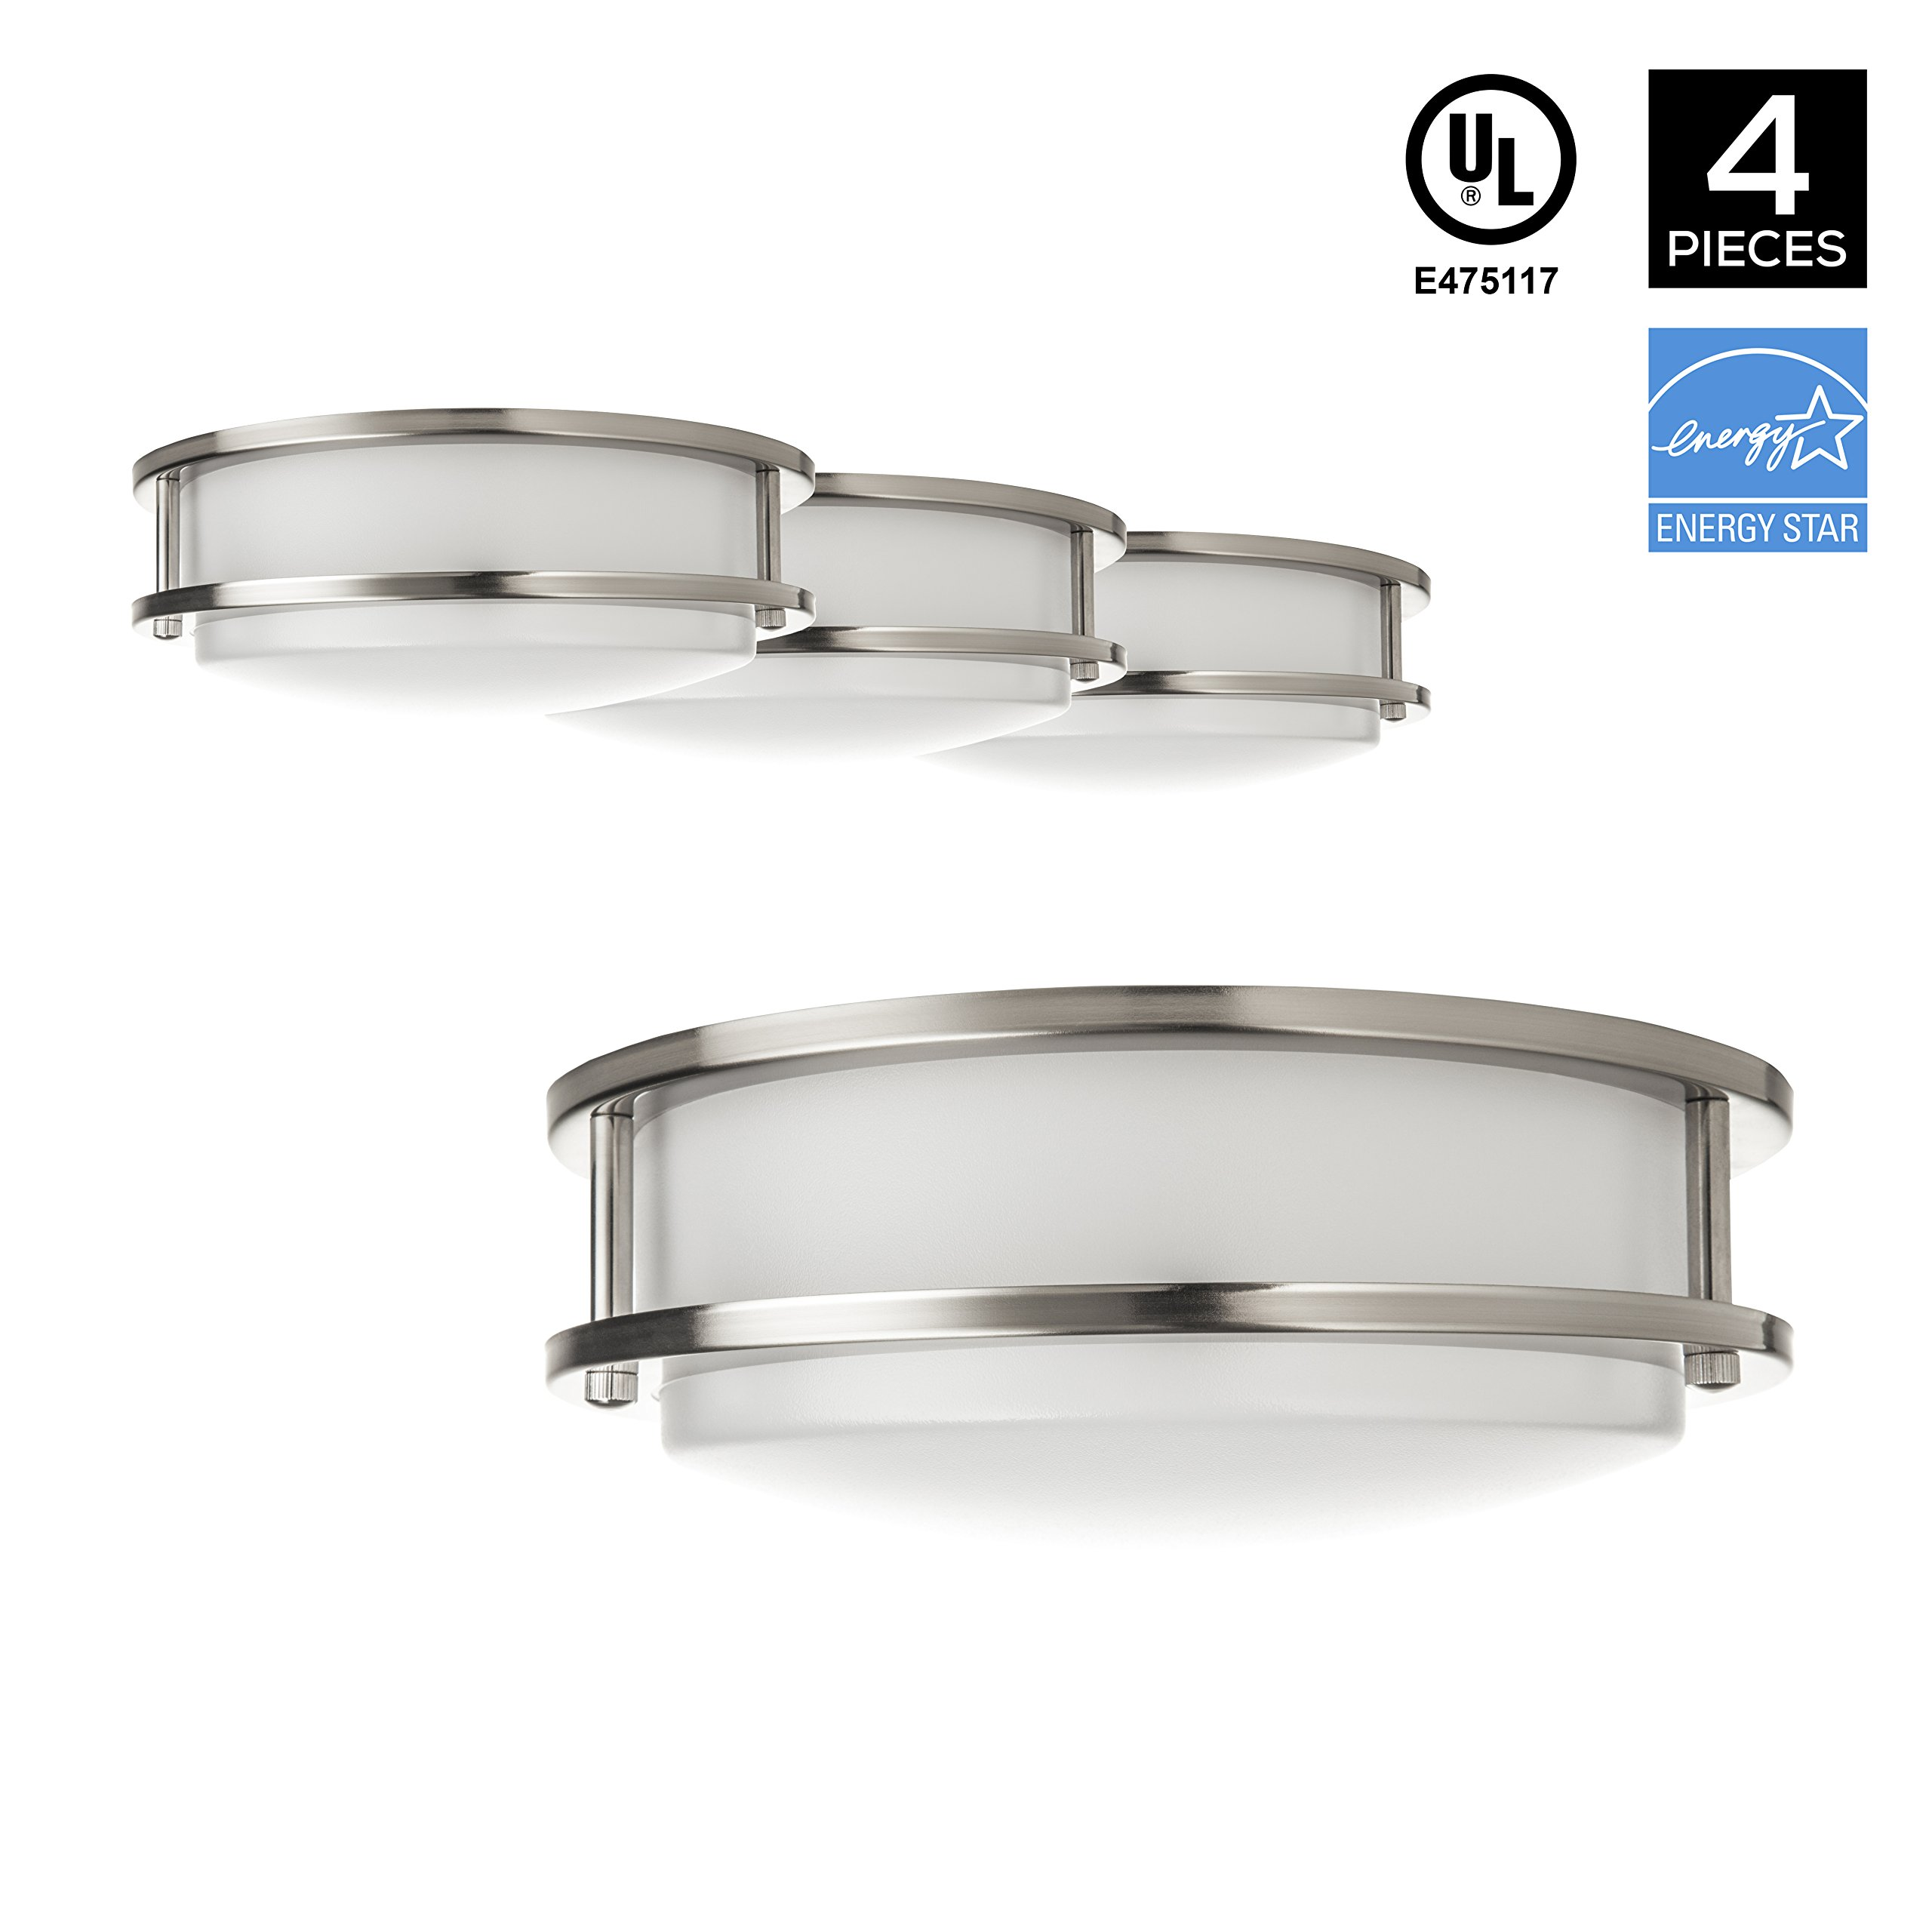 Hyperikon LED Flush Mount Ceiling Light, 10'', 15W (65W equivalent), 1390lm, 4000K (Daylight Glow), 120° Beam Angle, 120V, UL and ENERGY STAR Listed, 10-Inch Flush Mount, Dimmable - (Pack of 4)